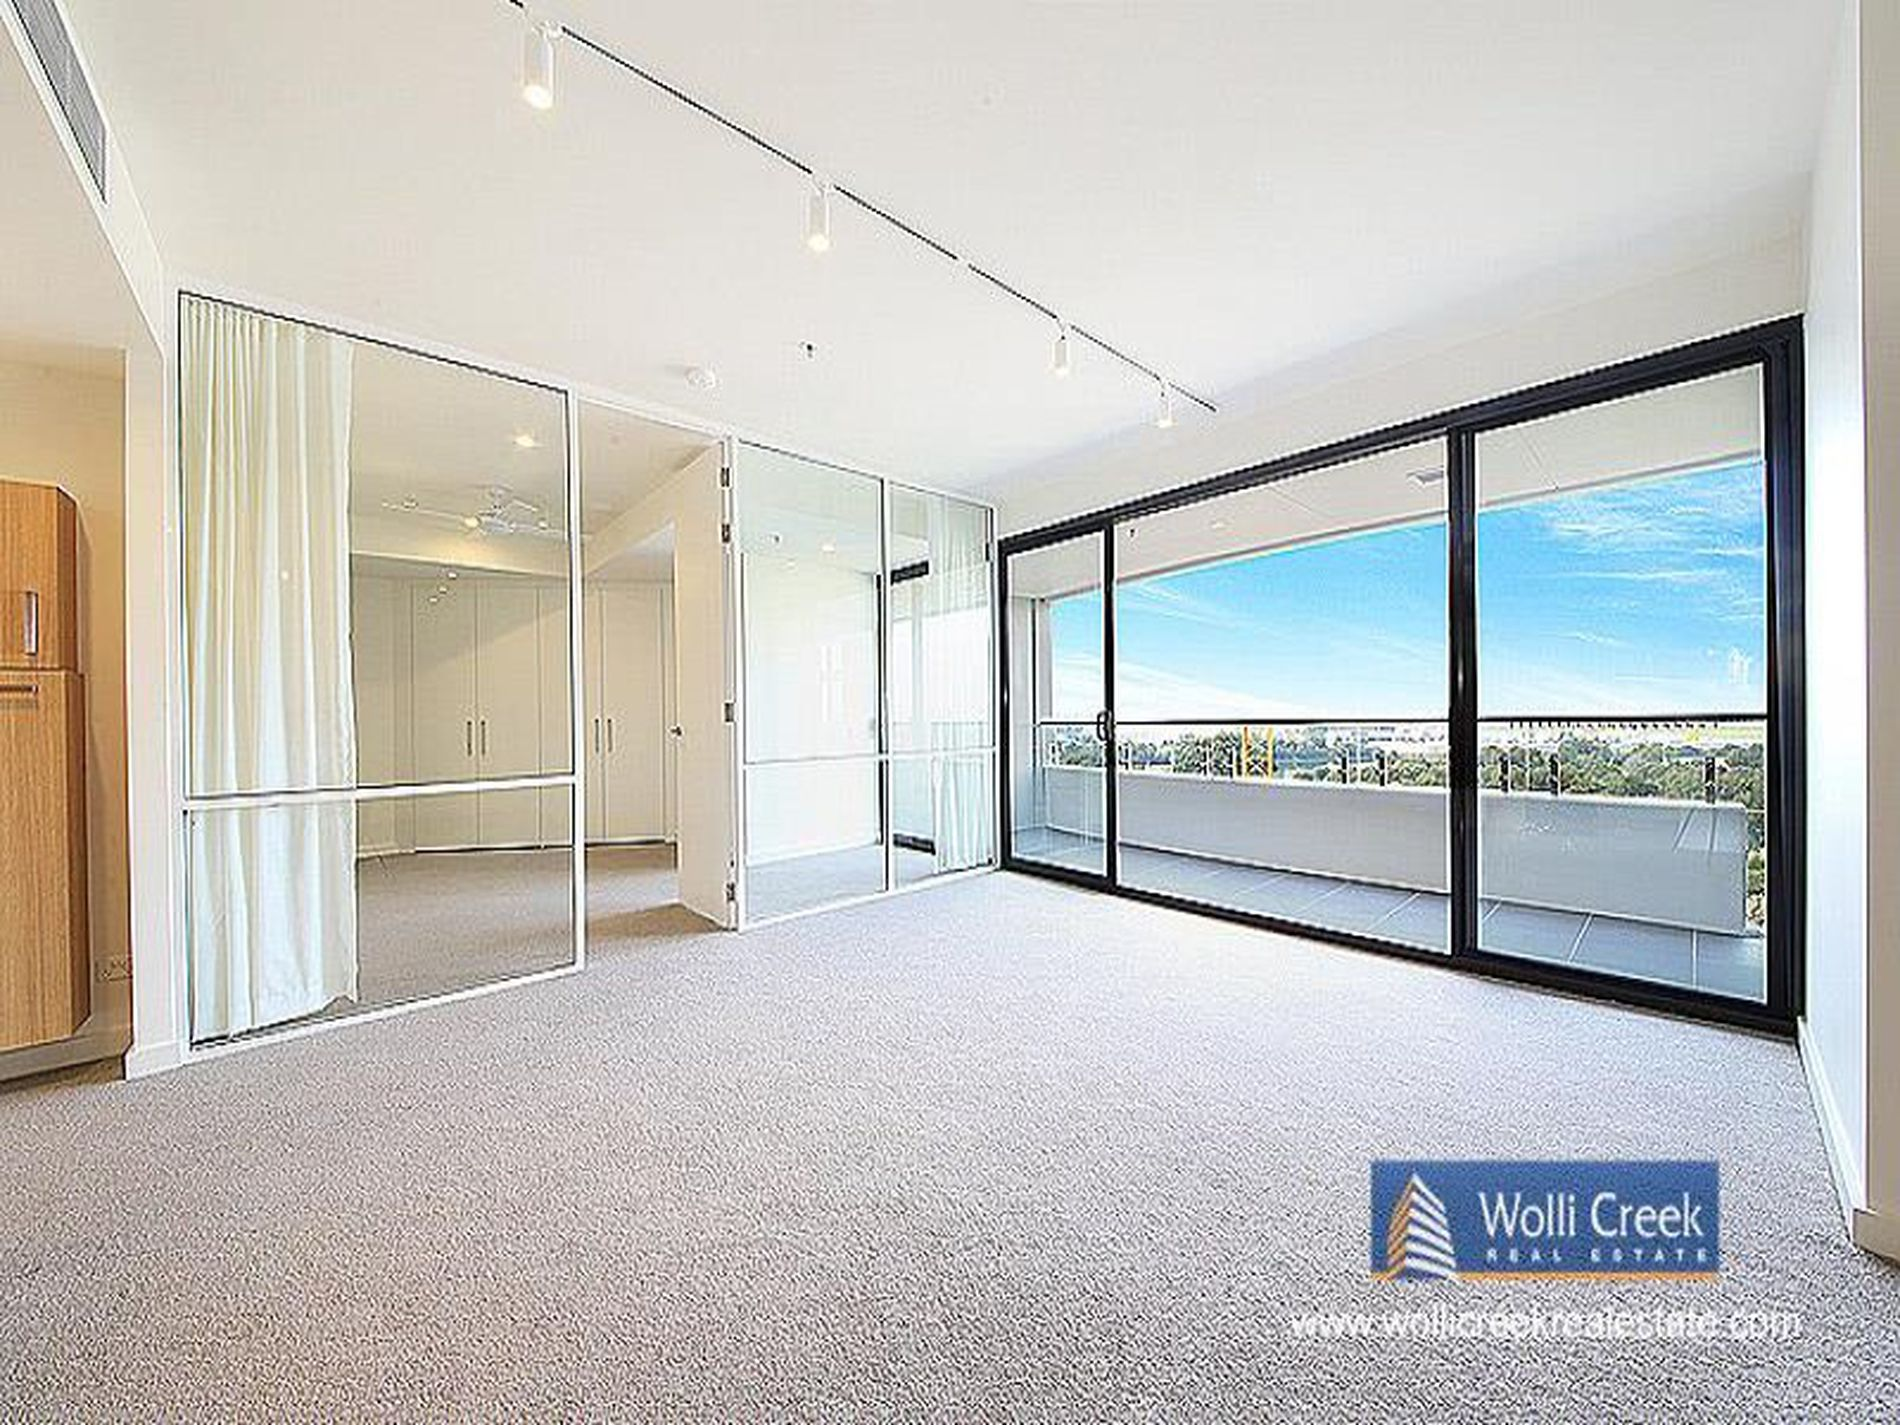 B11.07 / 24 Levey Street, Wolli Creek